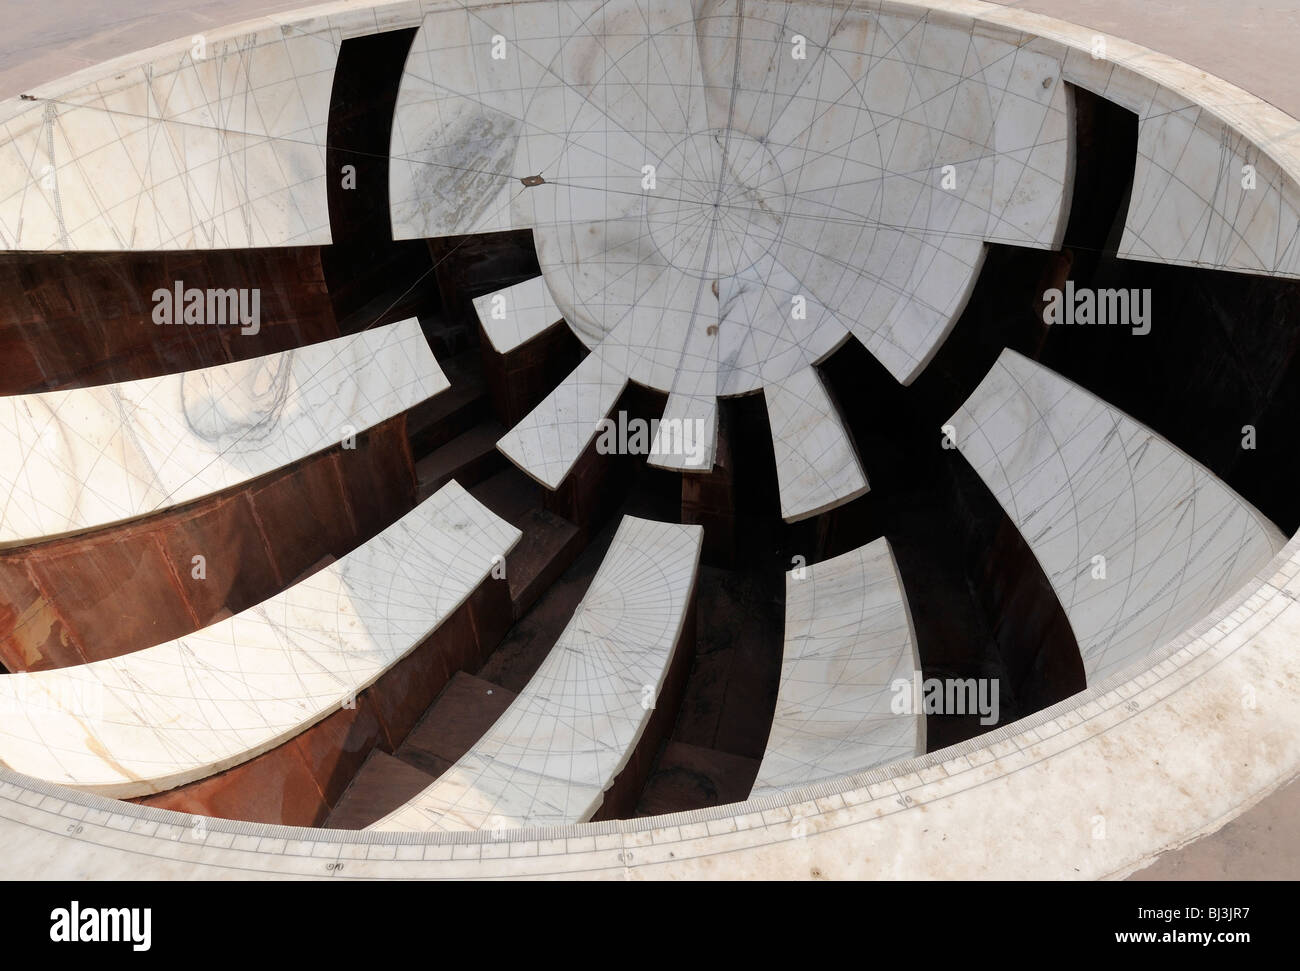 Astronomical instrument  built by Maharajah Jai Singh in 1728 as part of the Jantar Mantar observatory. - Stock Image